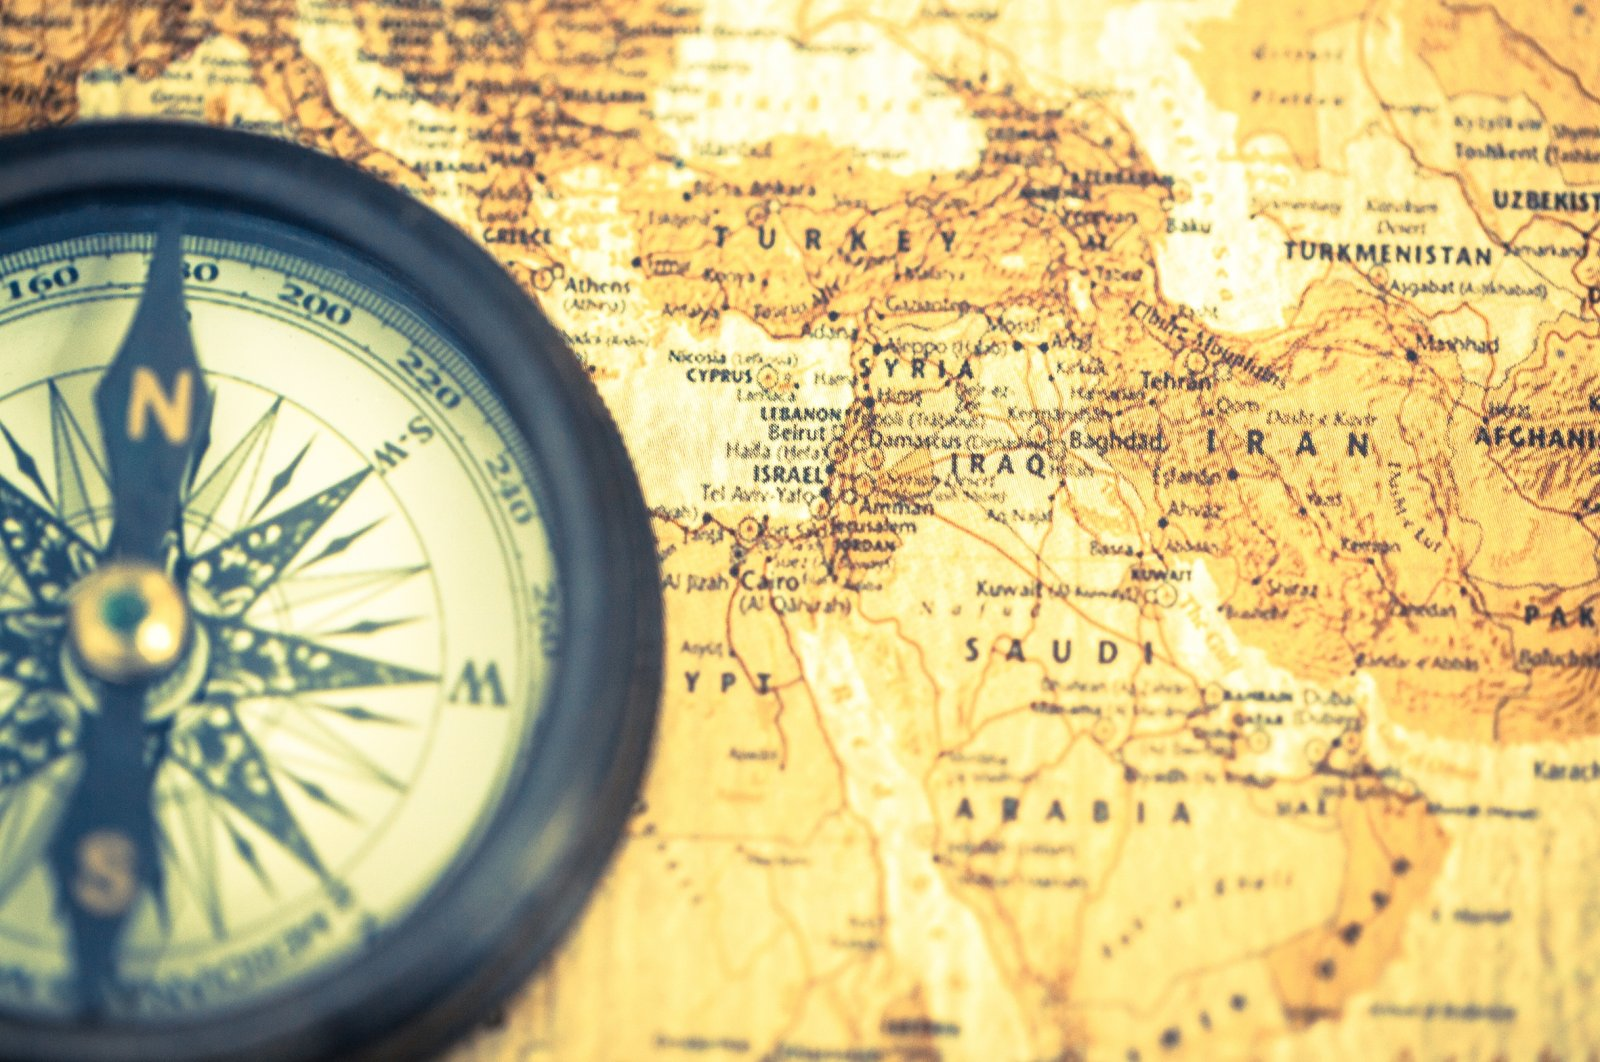 In this illustration photo, an old compass is seen on a vintage world map showing Middle Eastern geography. (Photo by Shutterstock)